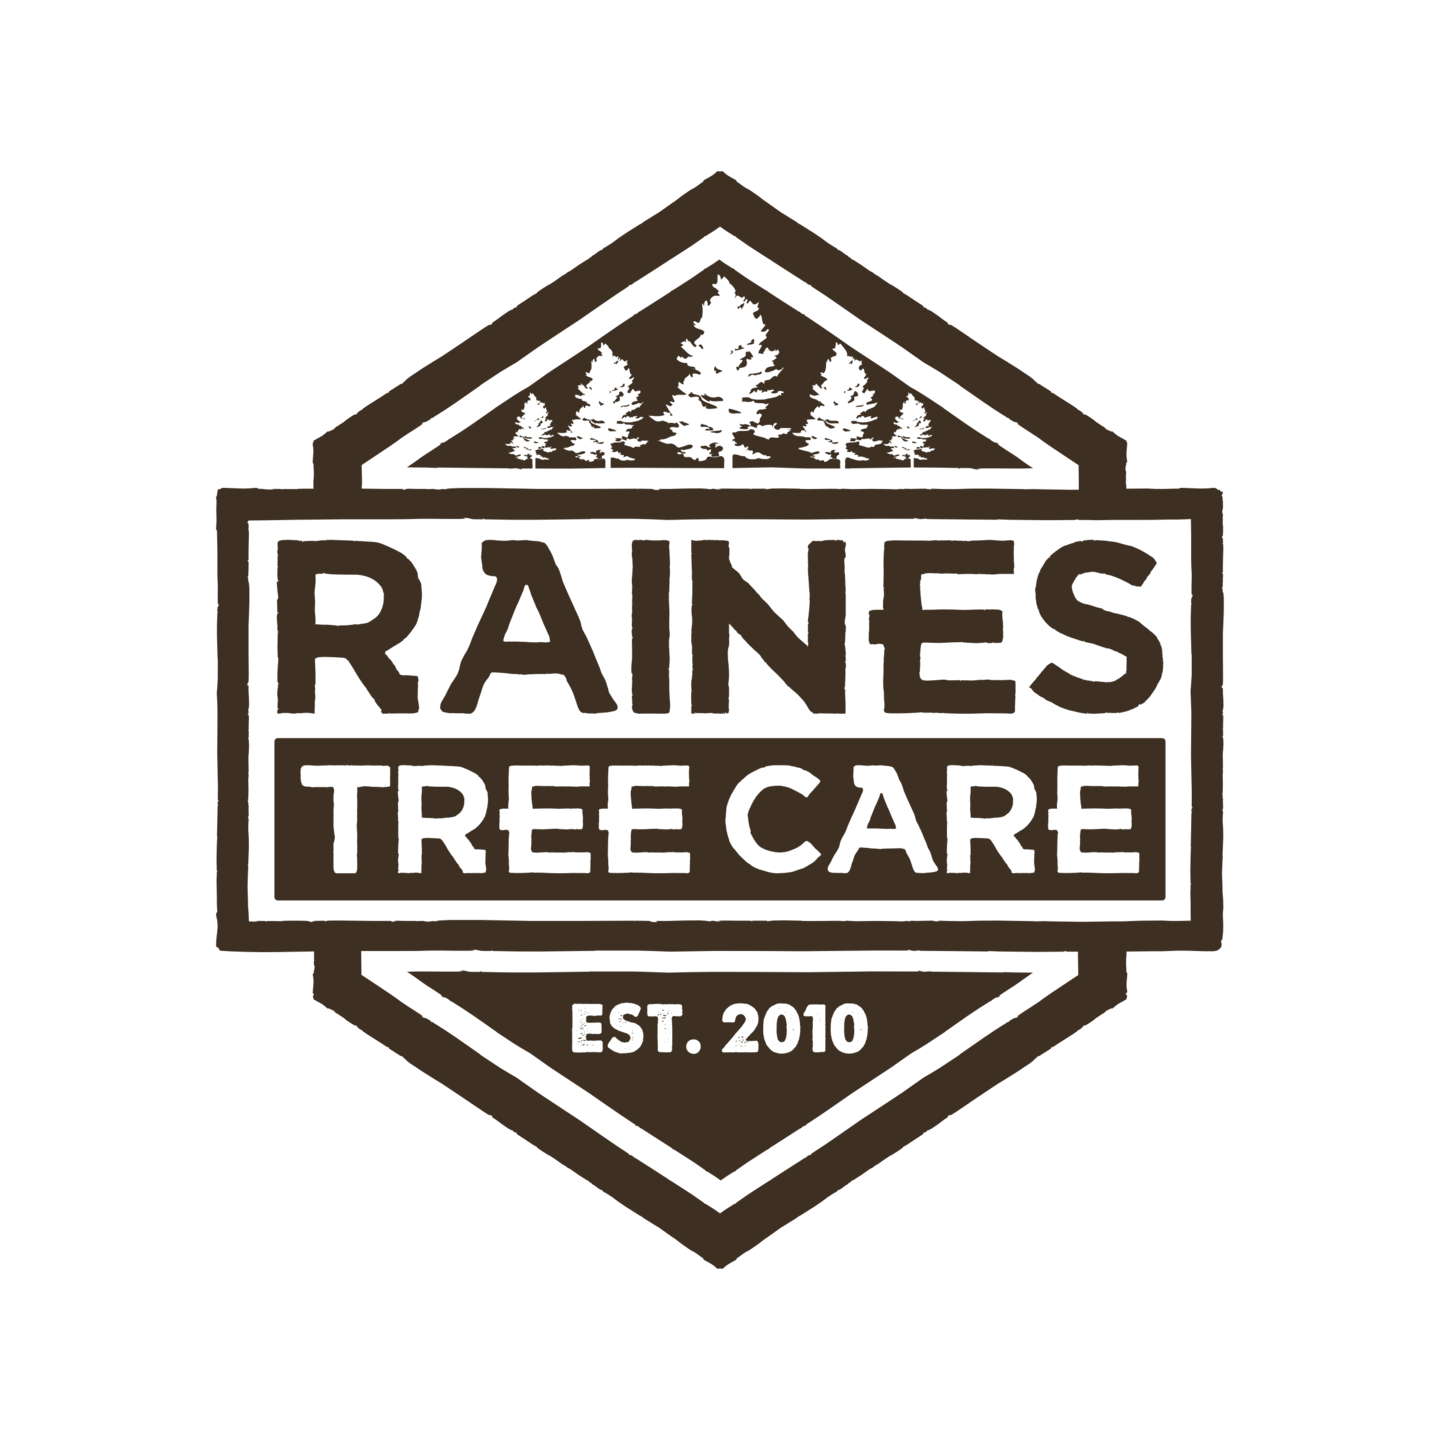 Raines Tree Care